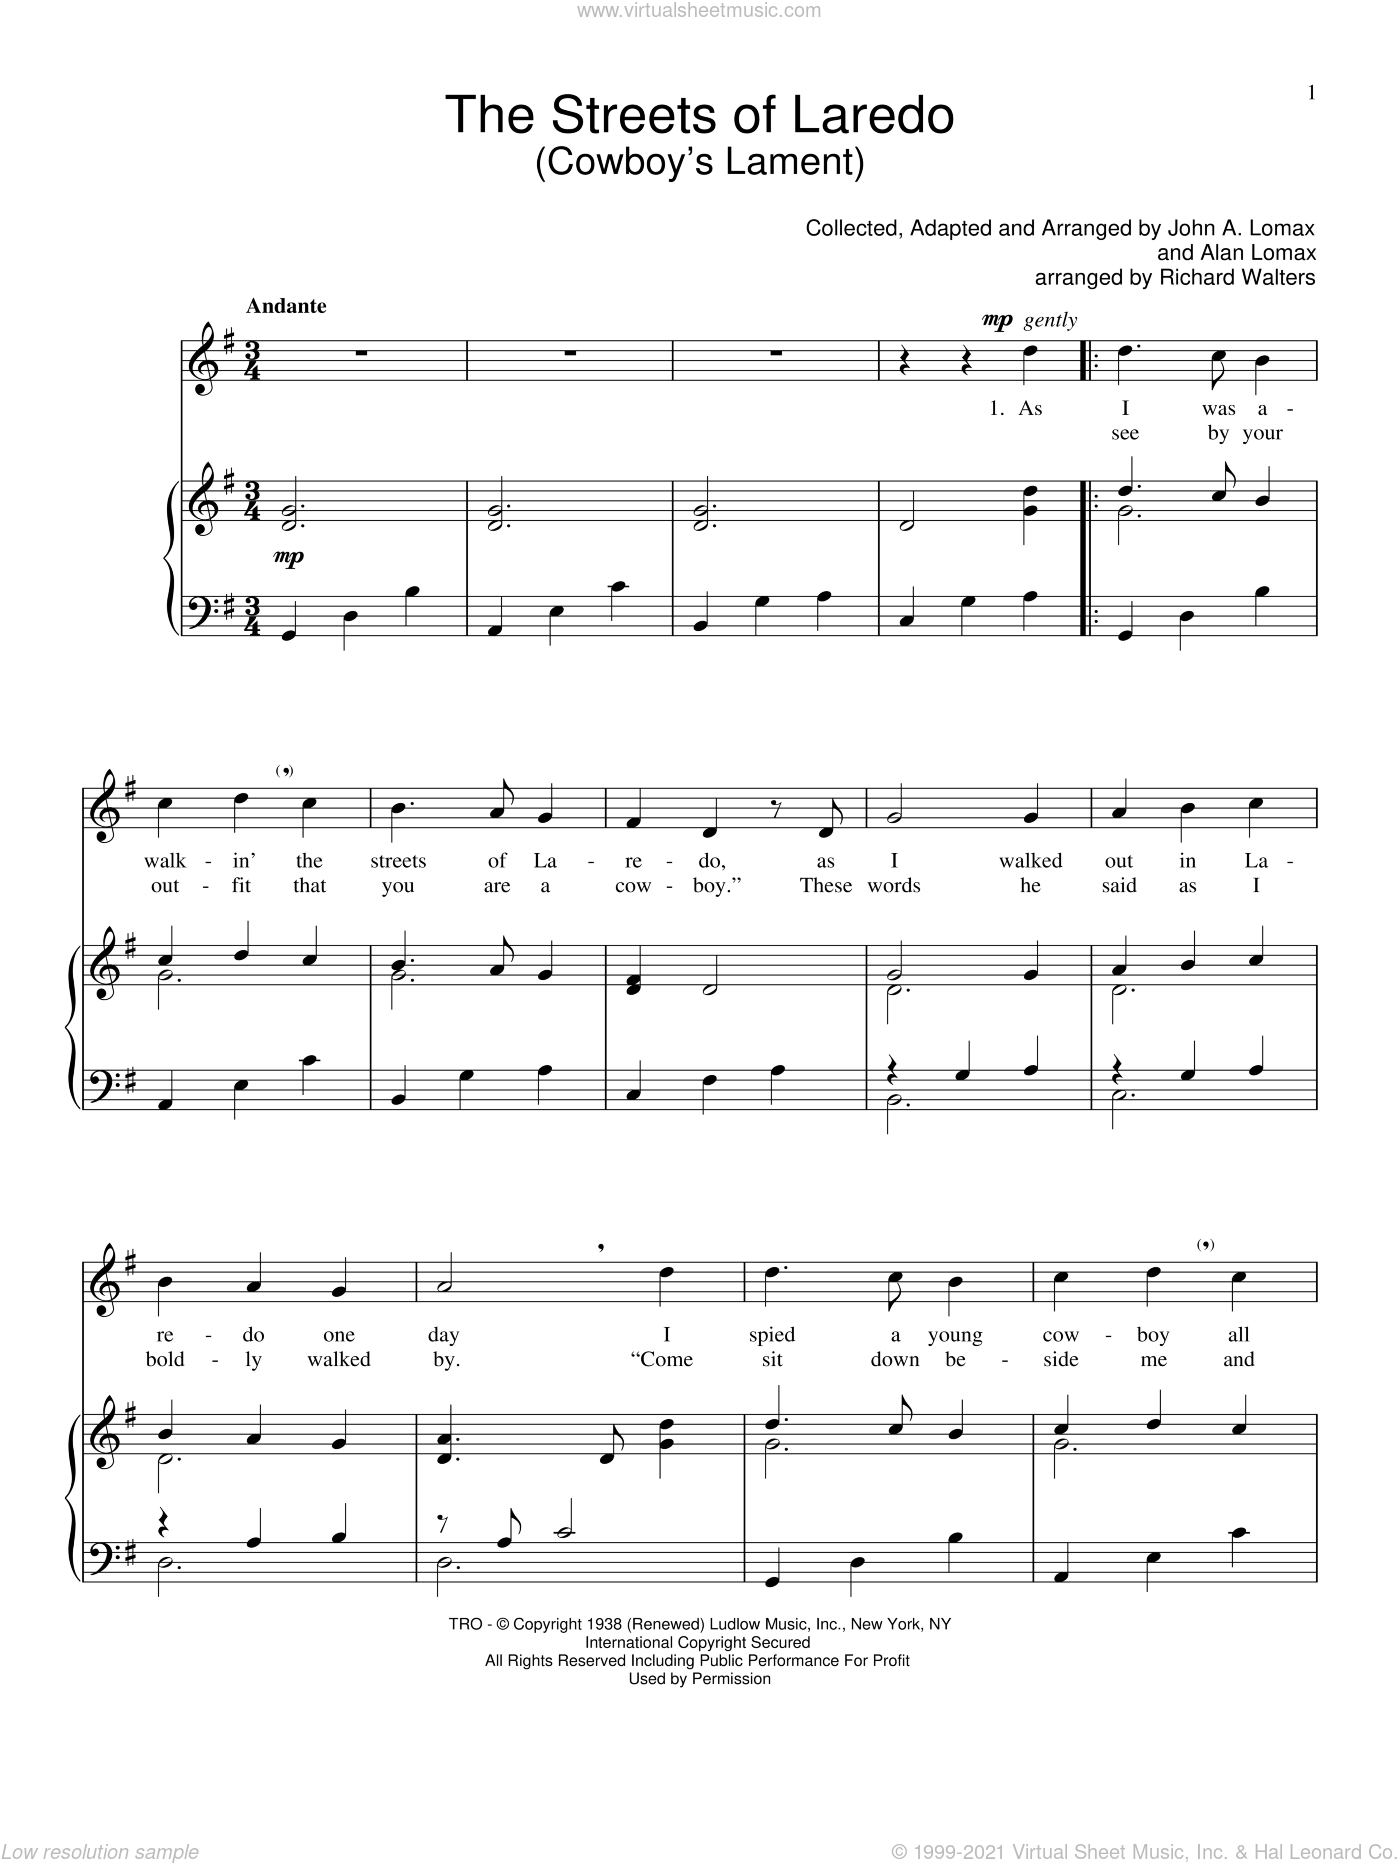 The Streets Of Laredo sheet music for voice and piano by John A. Lomax, intermediate skill level